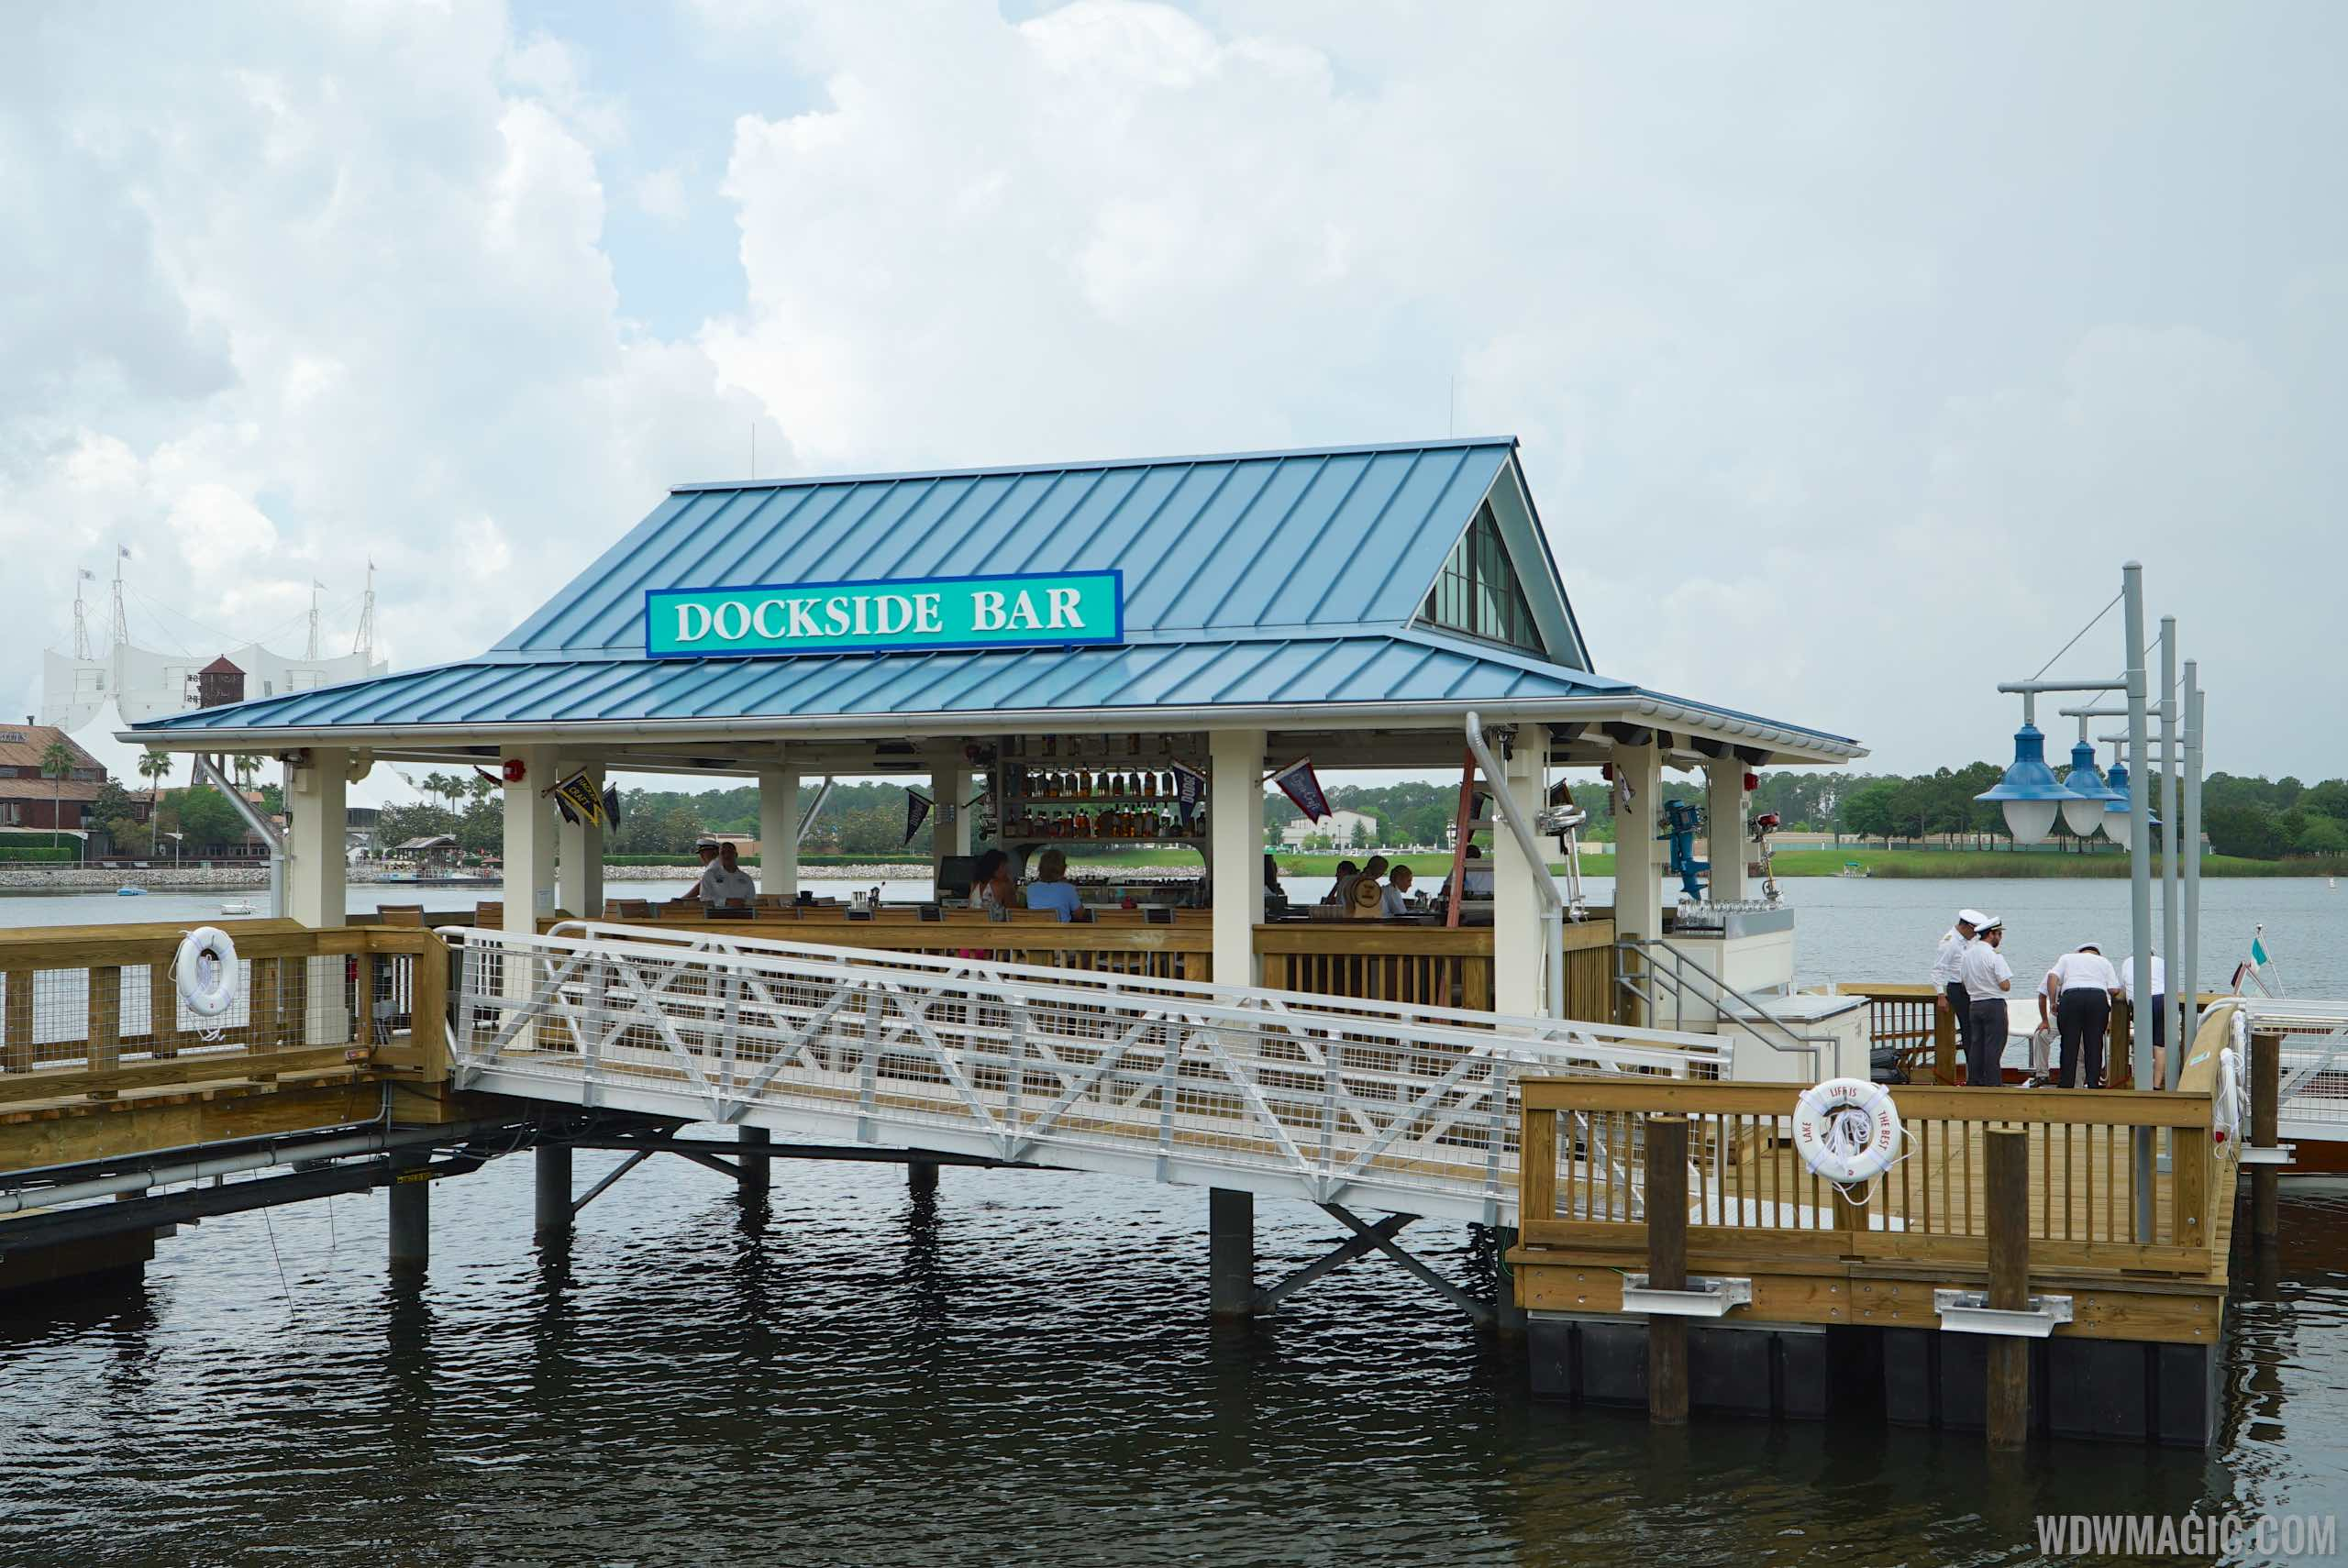 The BOATHOUSE - The Dockside Bar